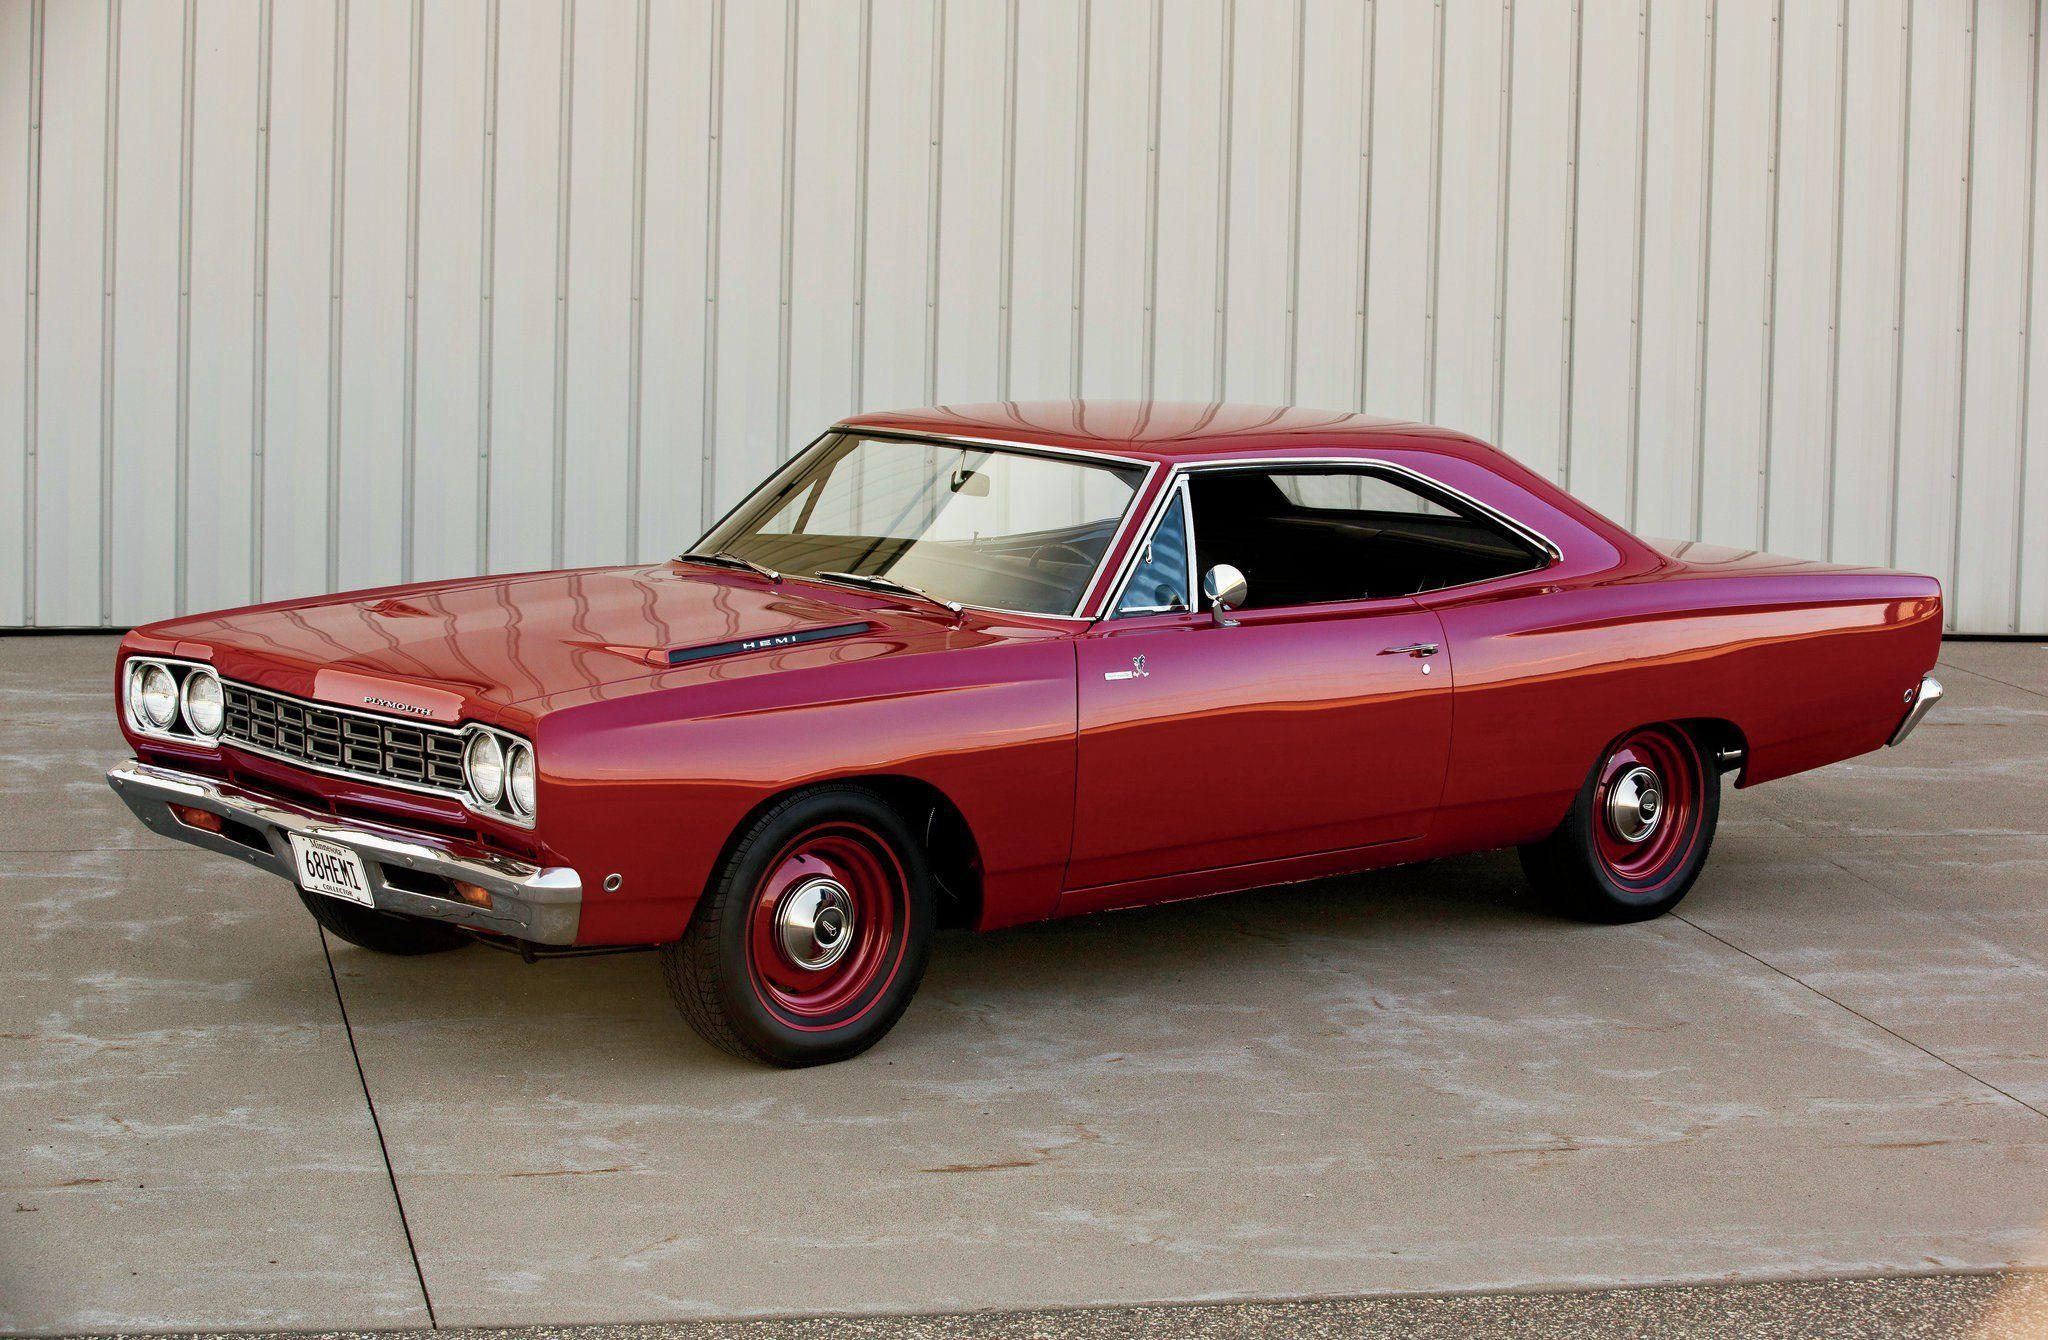 1968 Plymouth Road Runner - Road To Stardom - Hot Rod Network